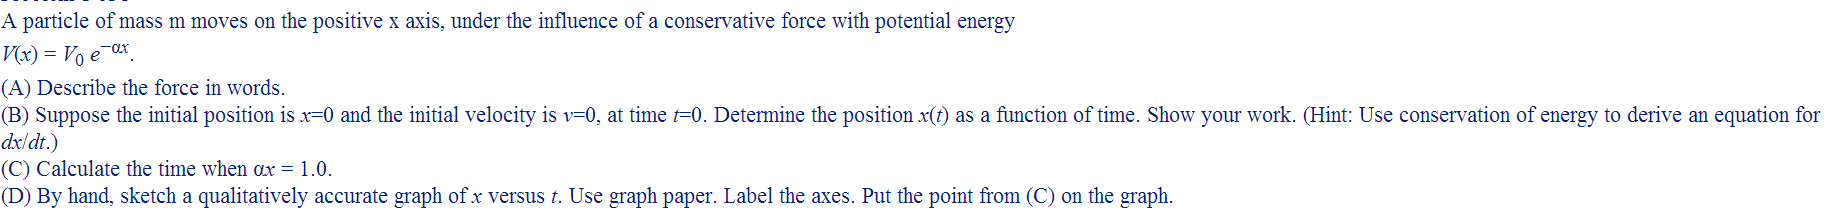 Is the force just the integration of V(x) ?If not